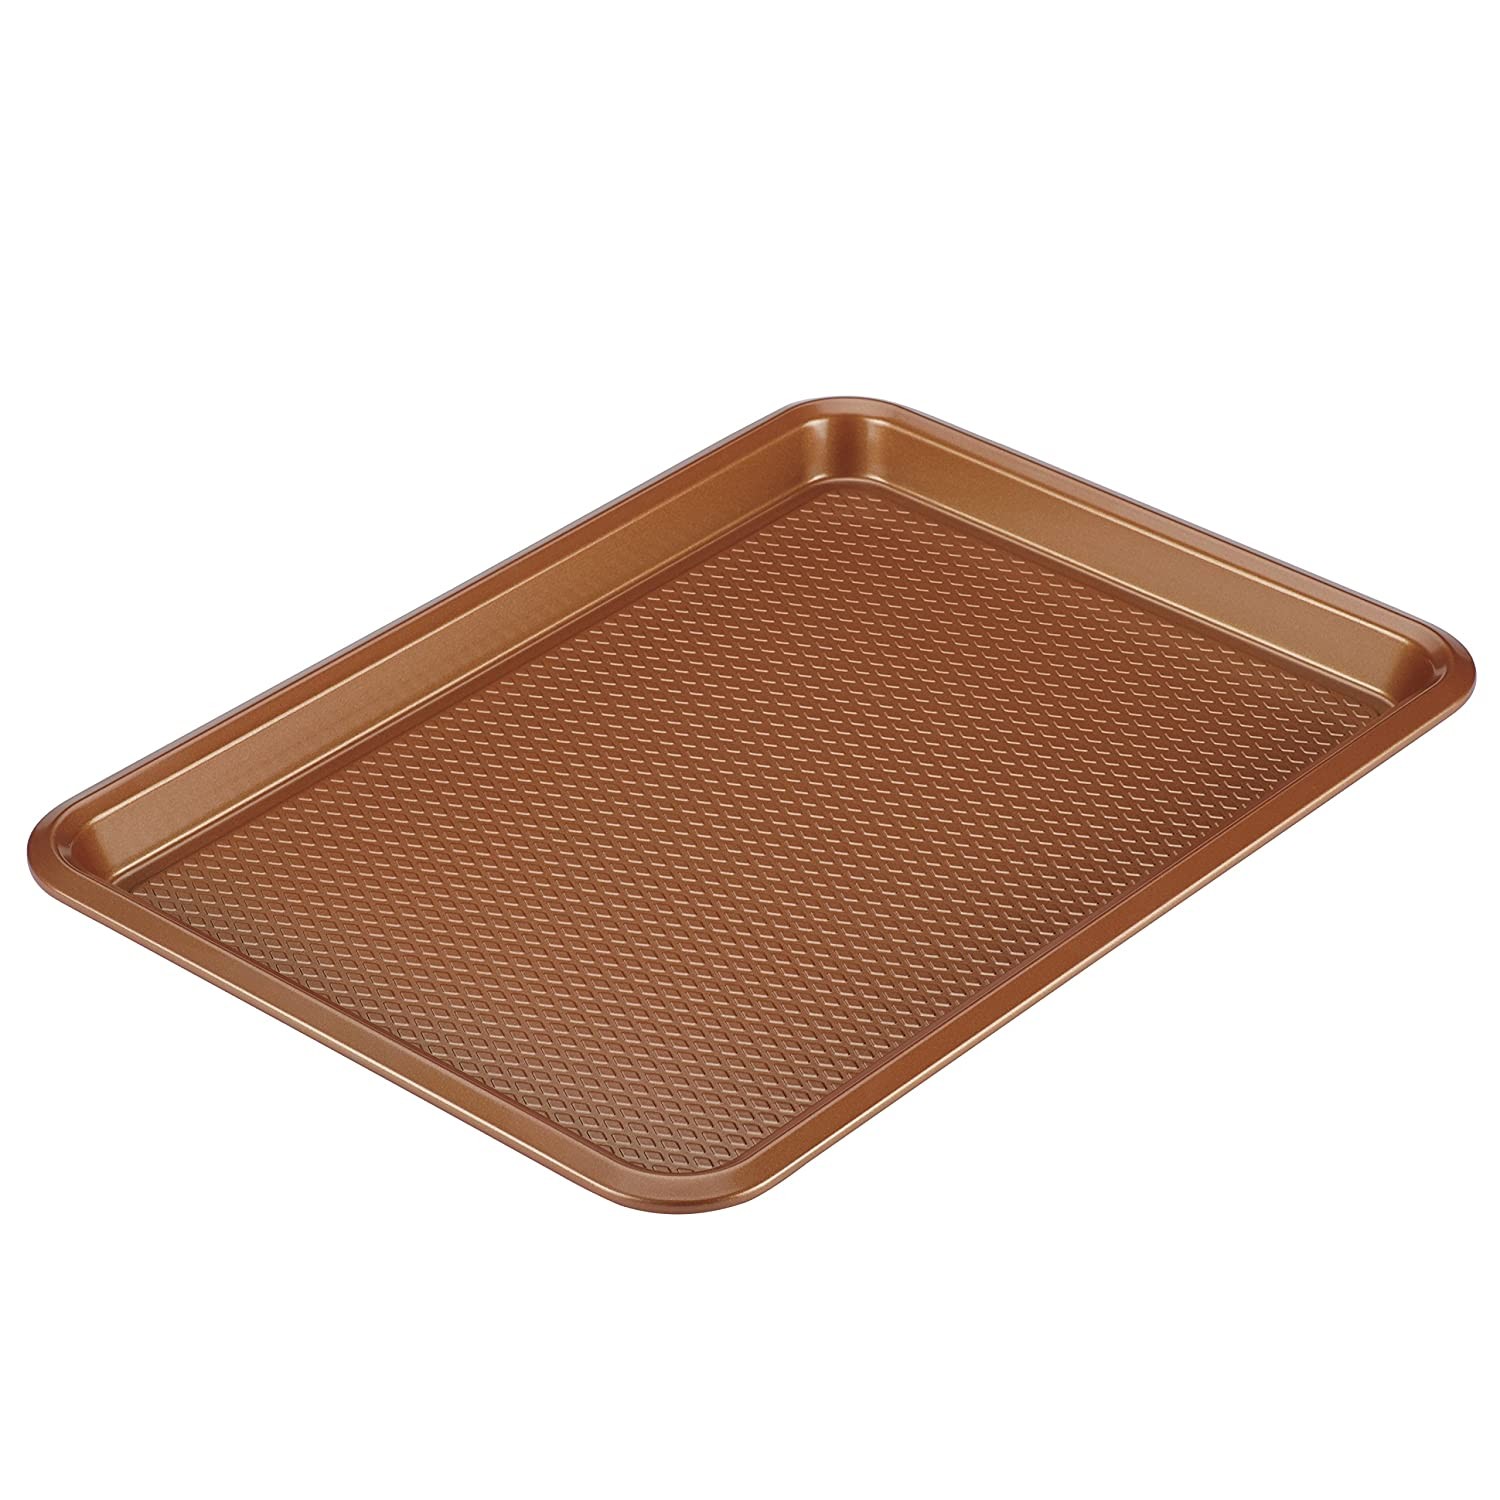 Ayesha Curry 46998 Nonstick Bakeware, Nonstick Cookie Sheet / Baking Sheet - 10 Inch x 15 Inch, Copper Brown